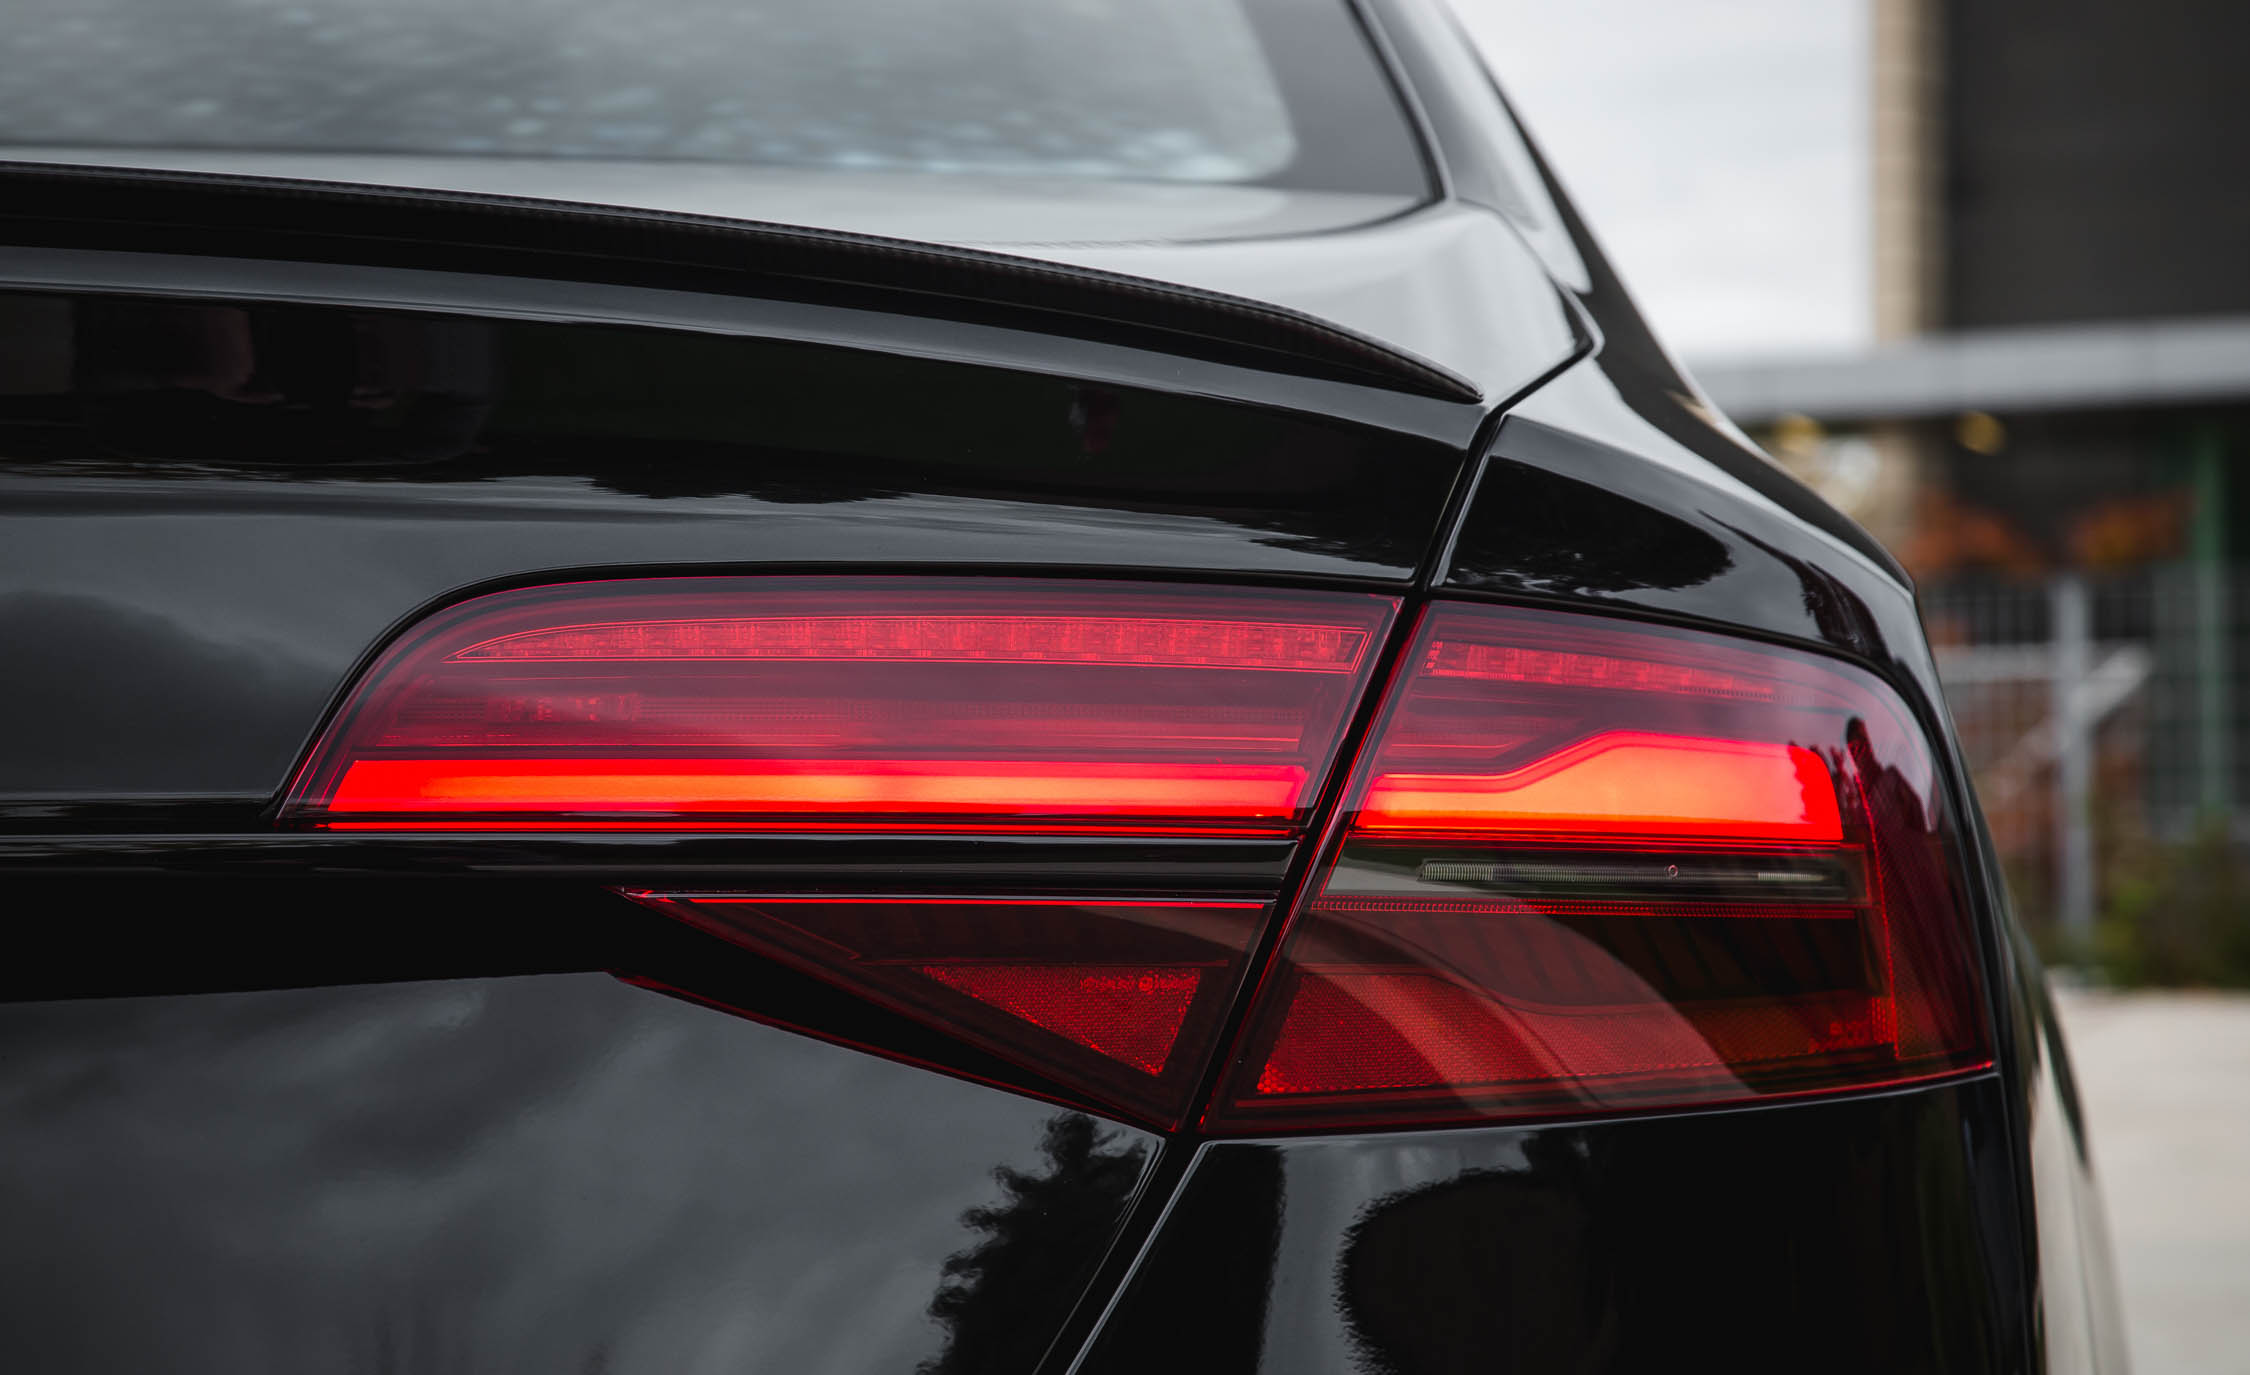 2017 Audi S8 Plus Exterior View Taillight (Photo 31 of 36)